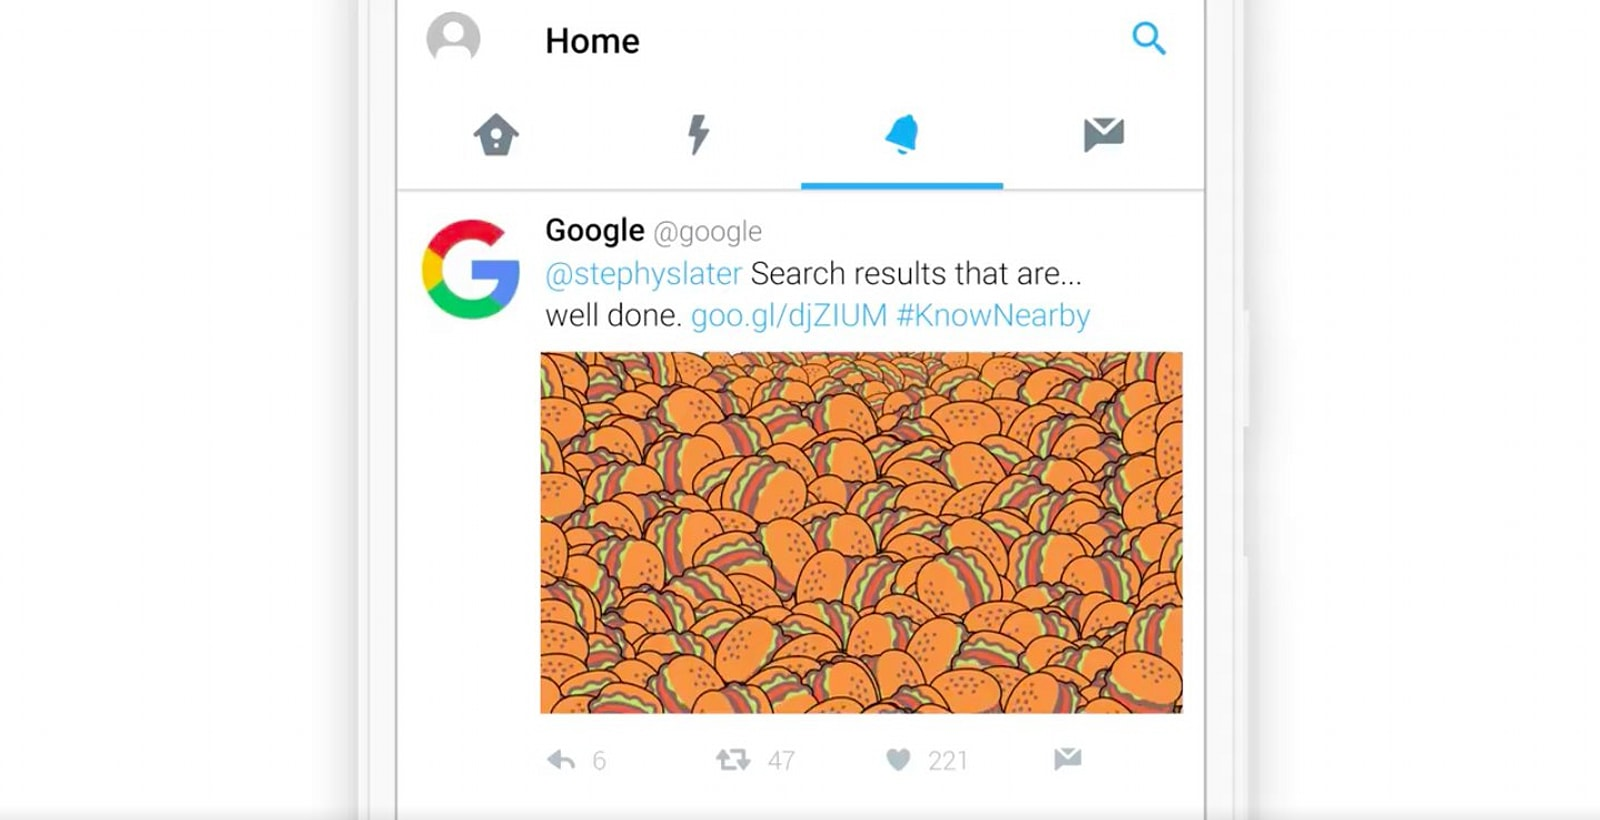 Google will yield results now if you tweet emojis